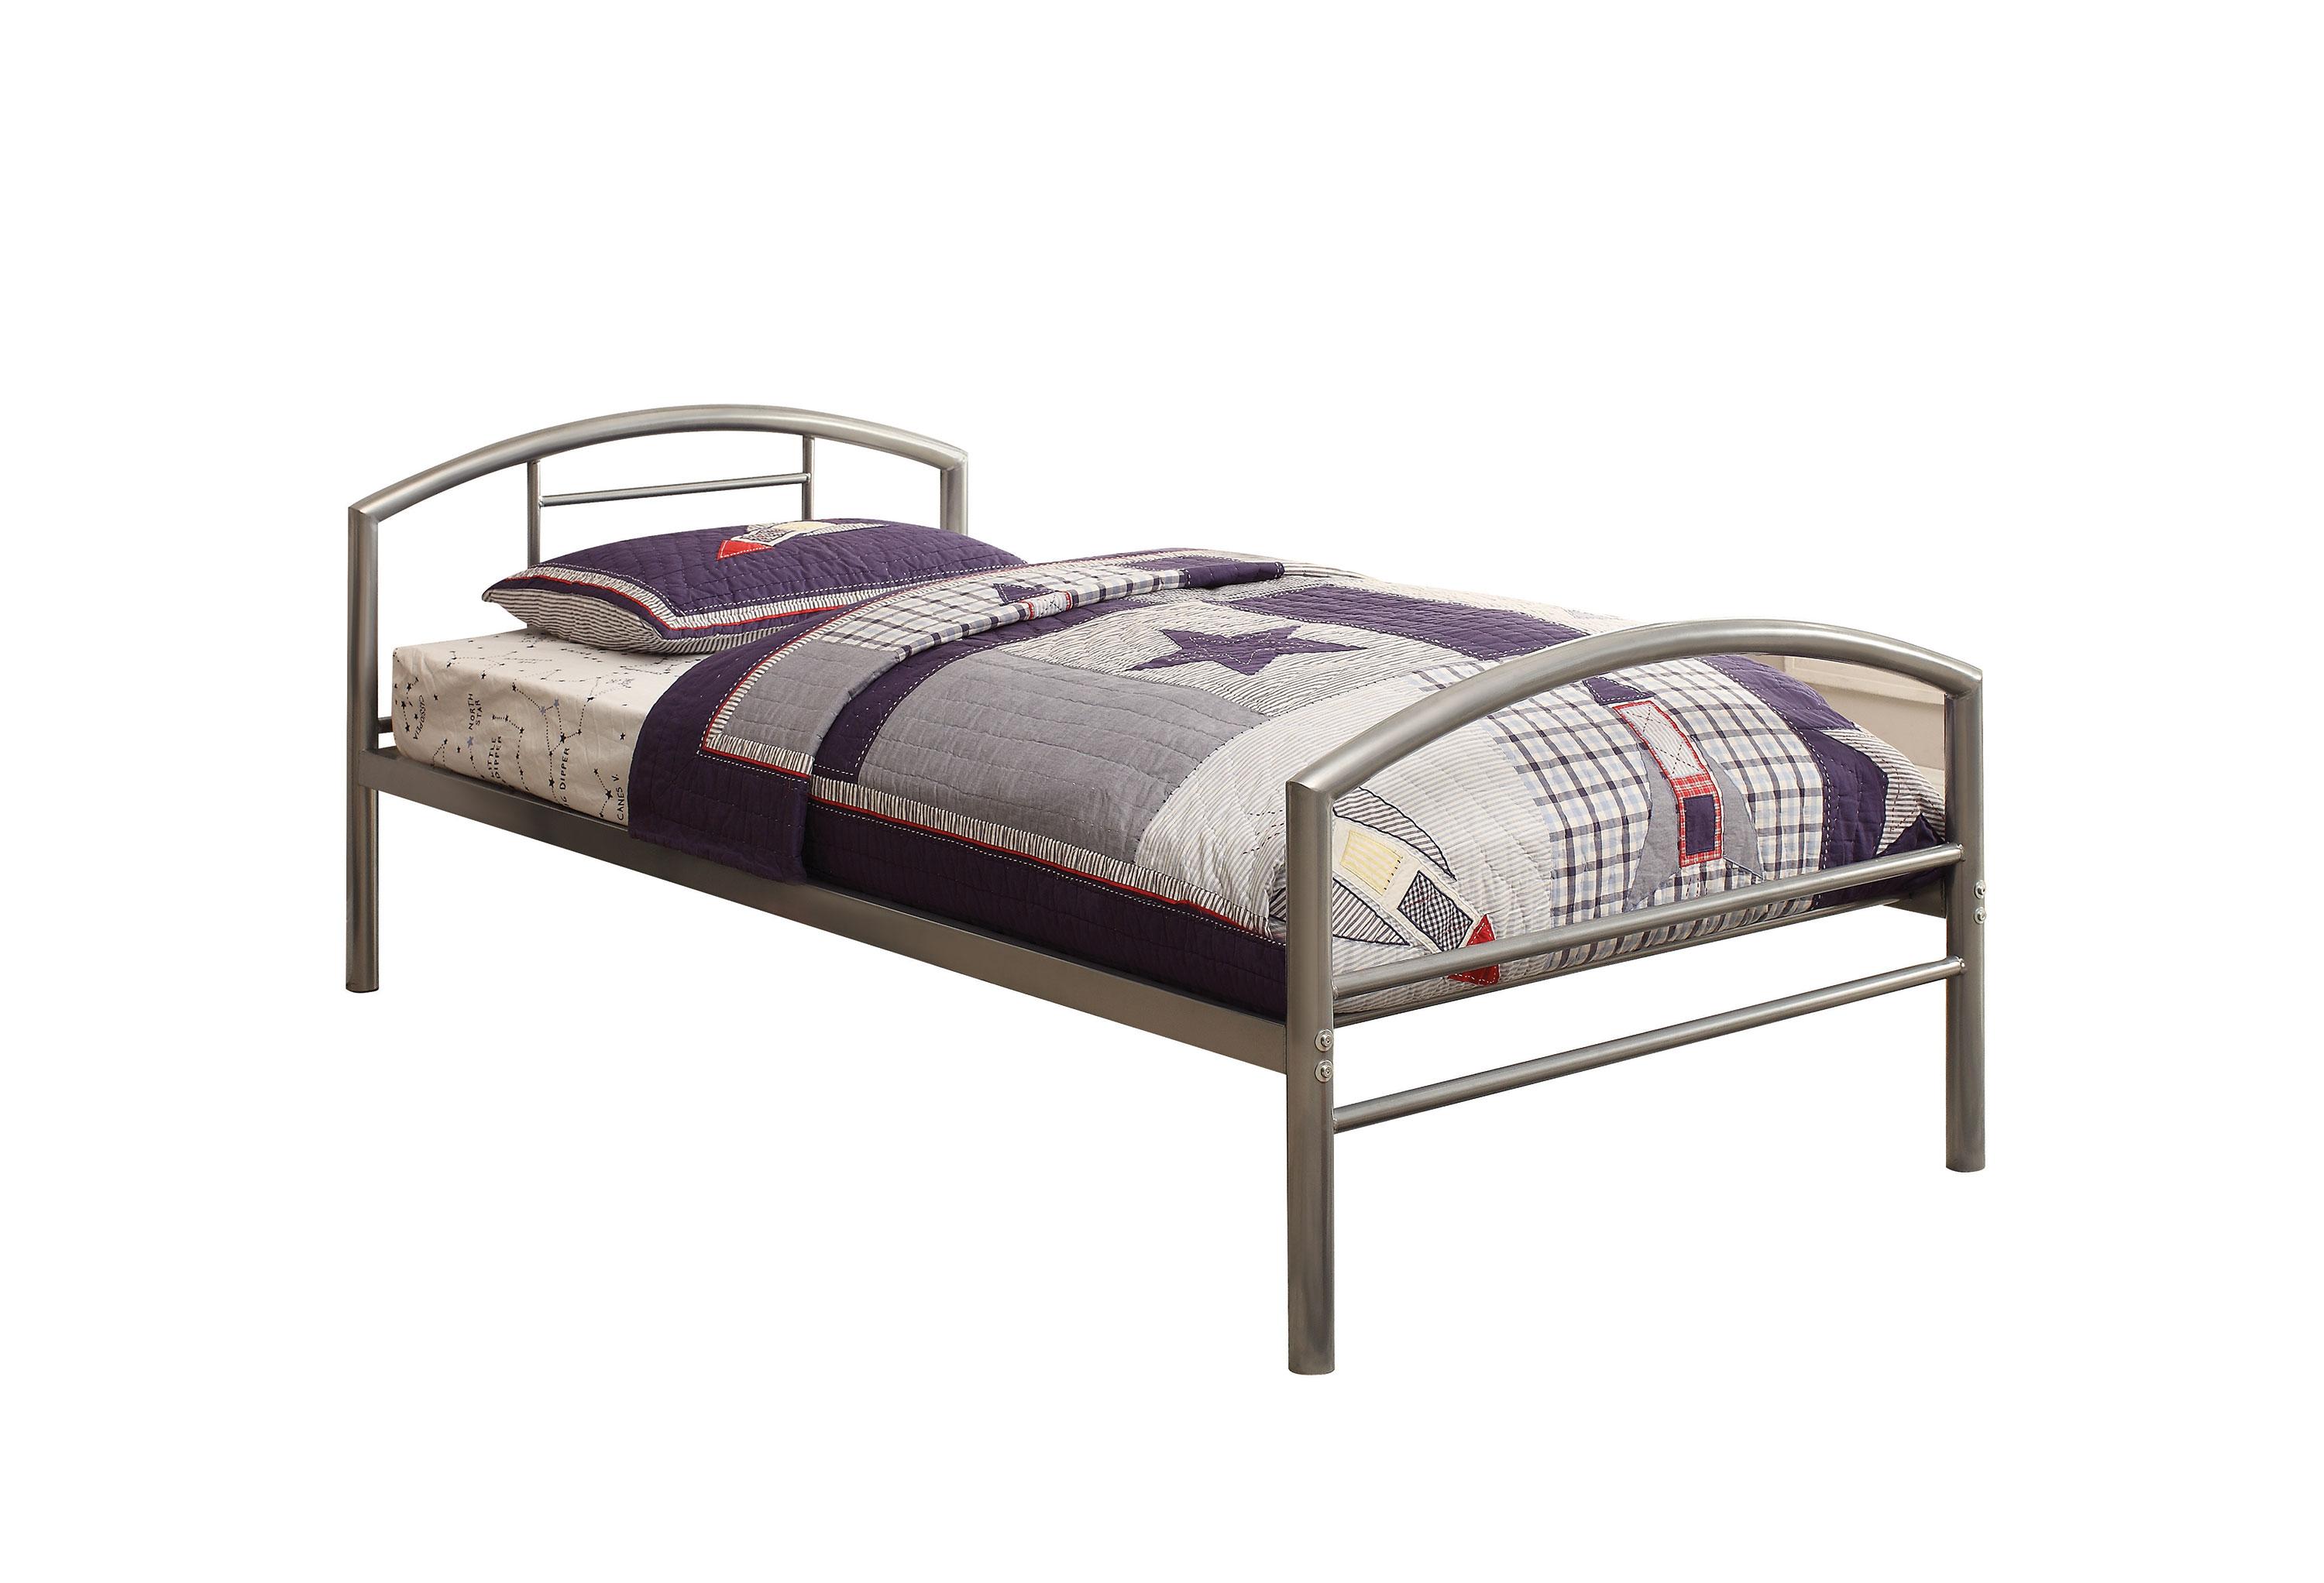 Coaster 400159t Silver Twin Metal Bed Frame